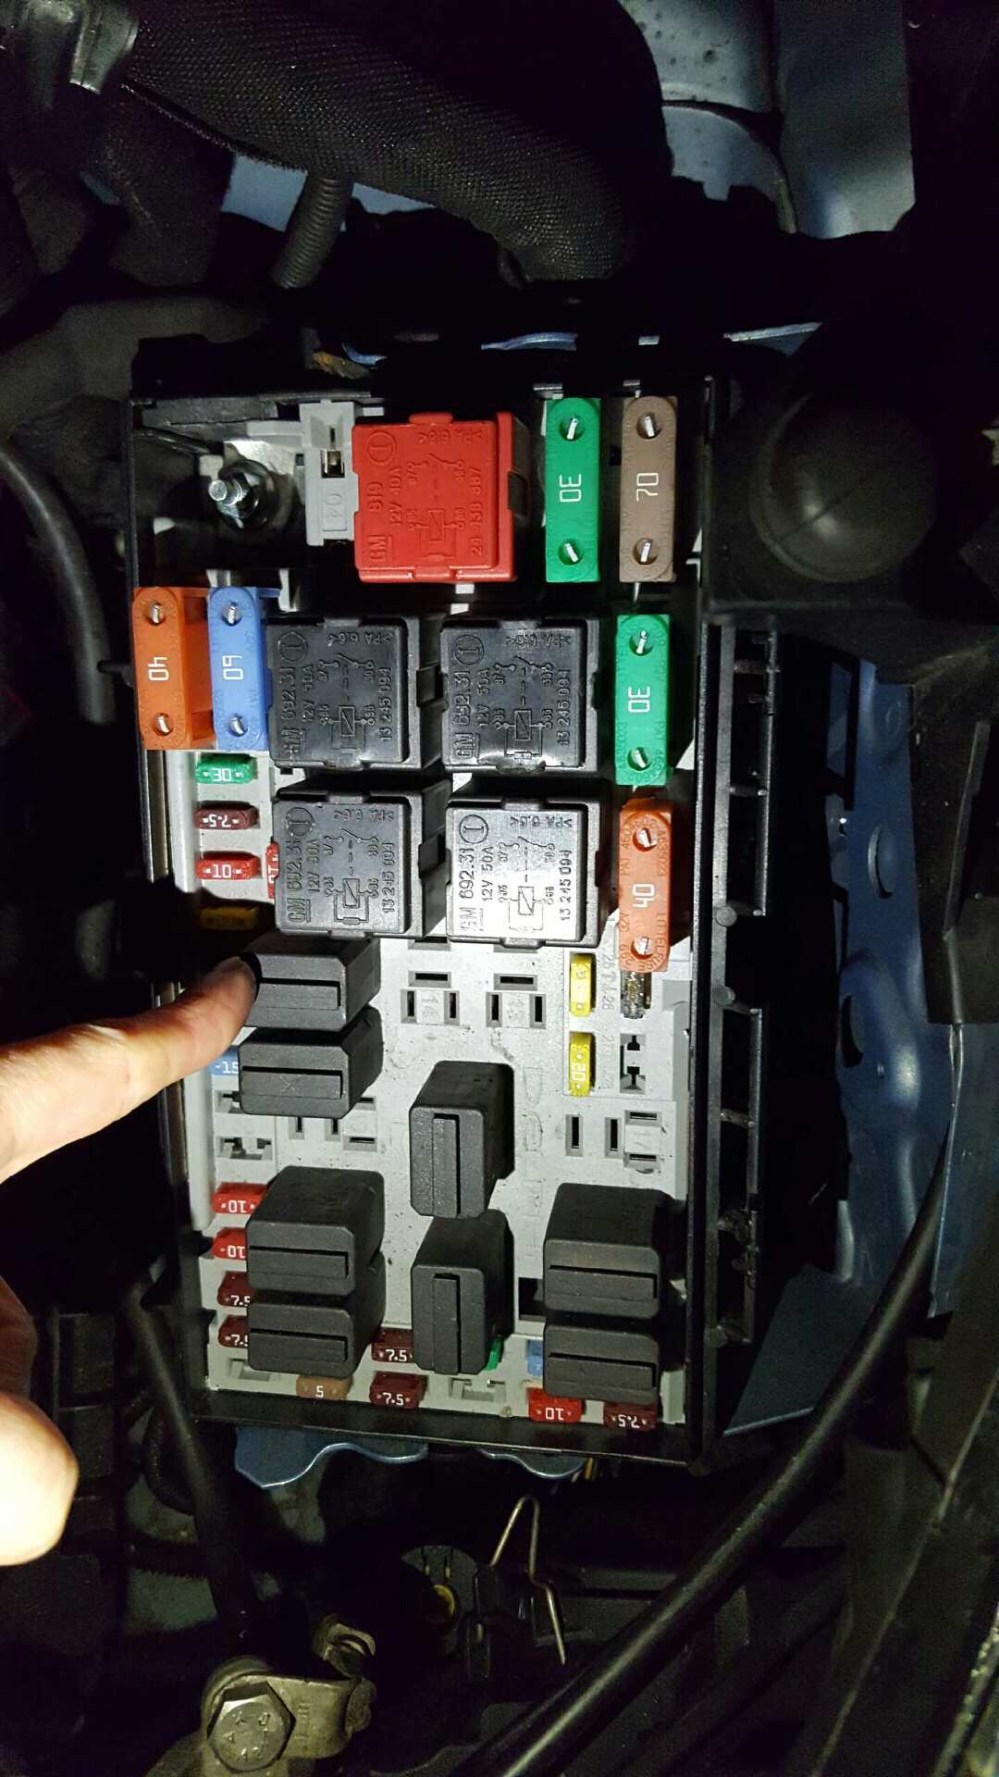 medium resolution of ecu help tracking down a battery drain issue on a 2007 vauxhall corsa fusebox